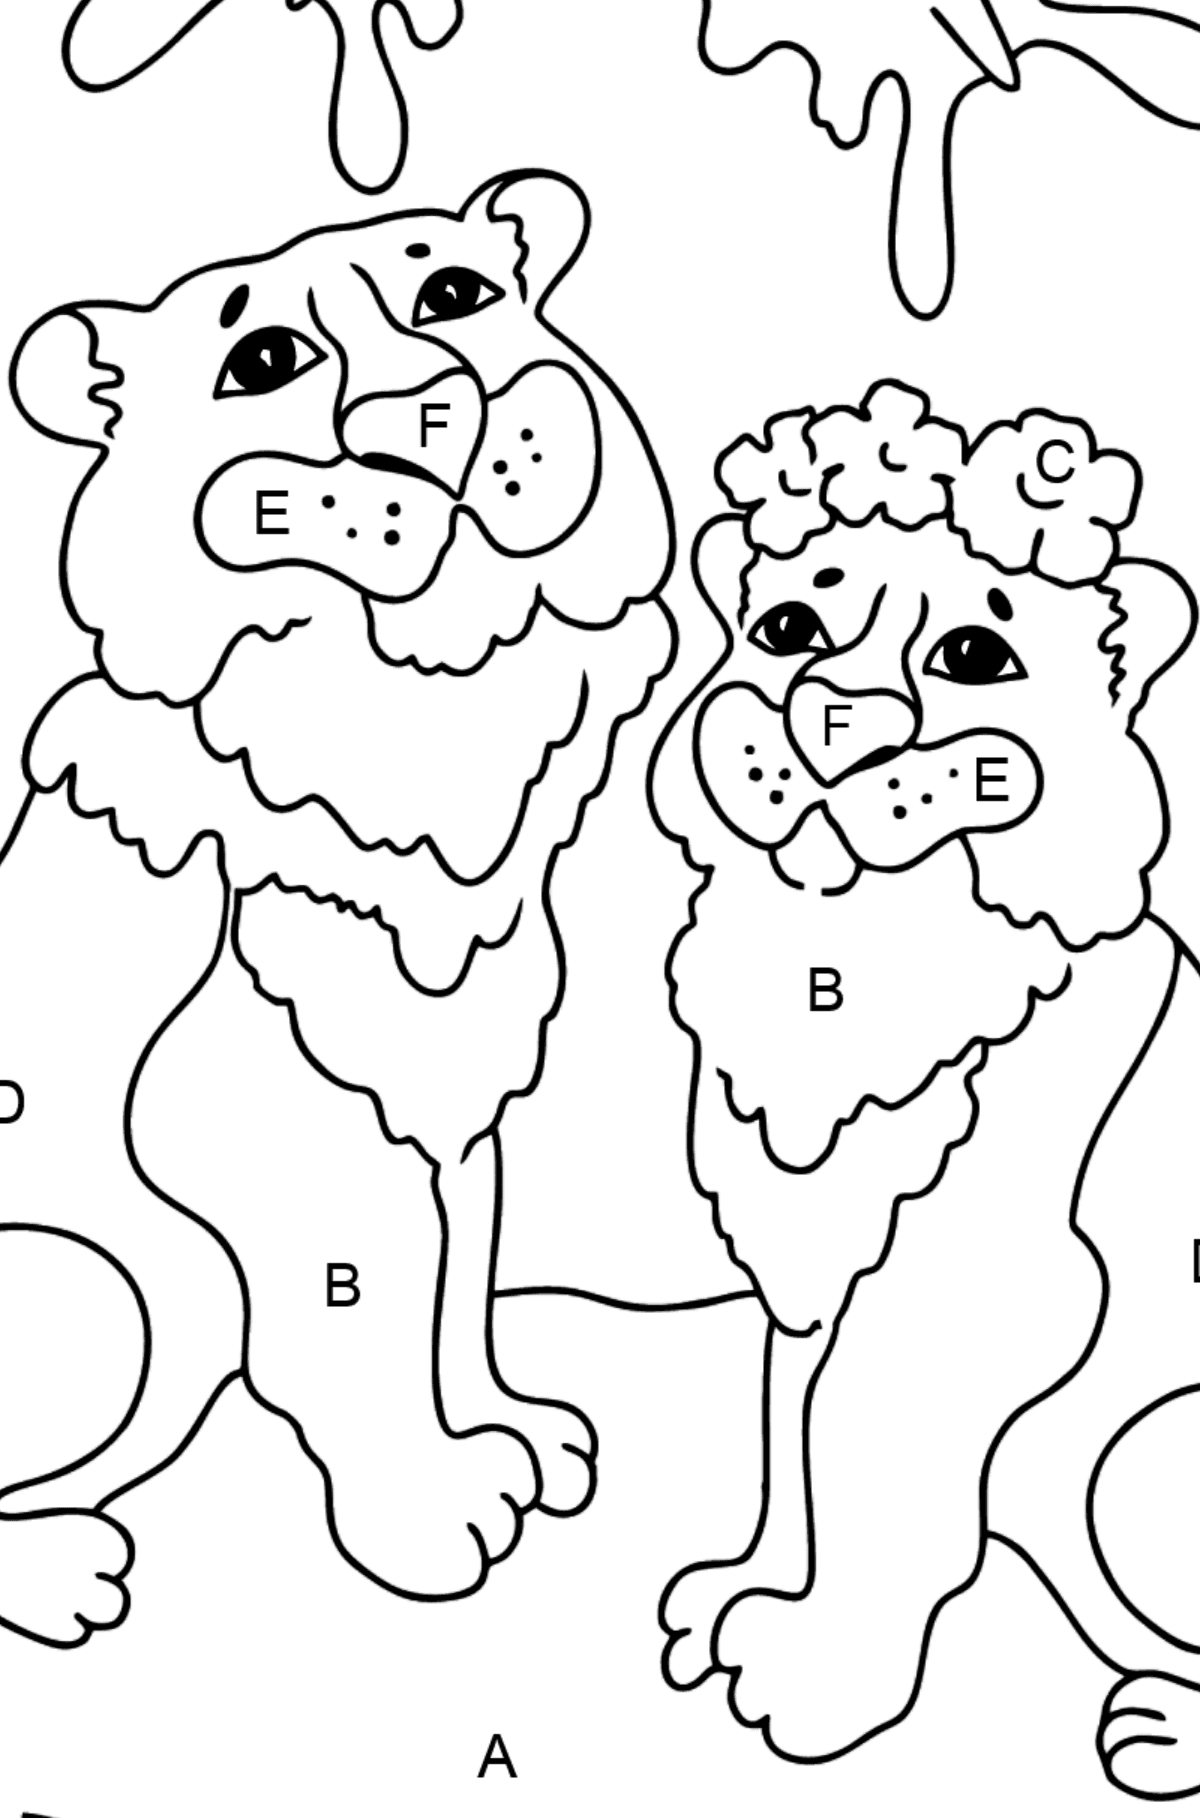 Coloring Page - A Tiger with a Tigress - Coloring by Letters for Kids